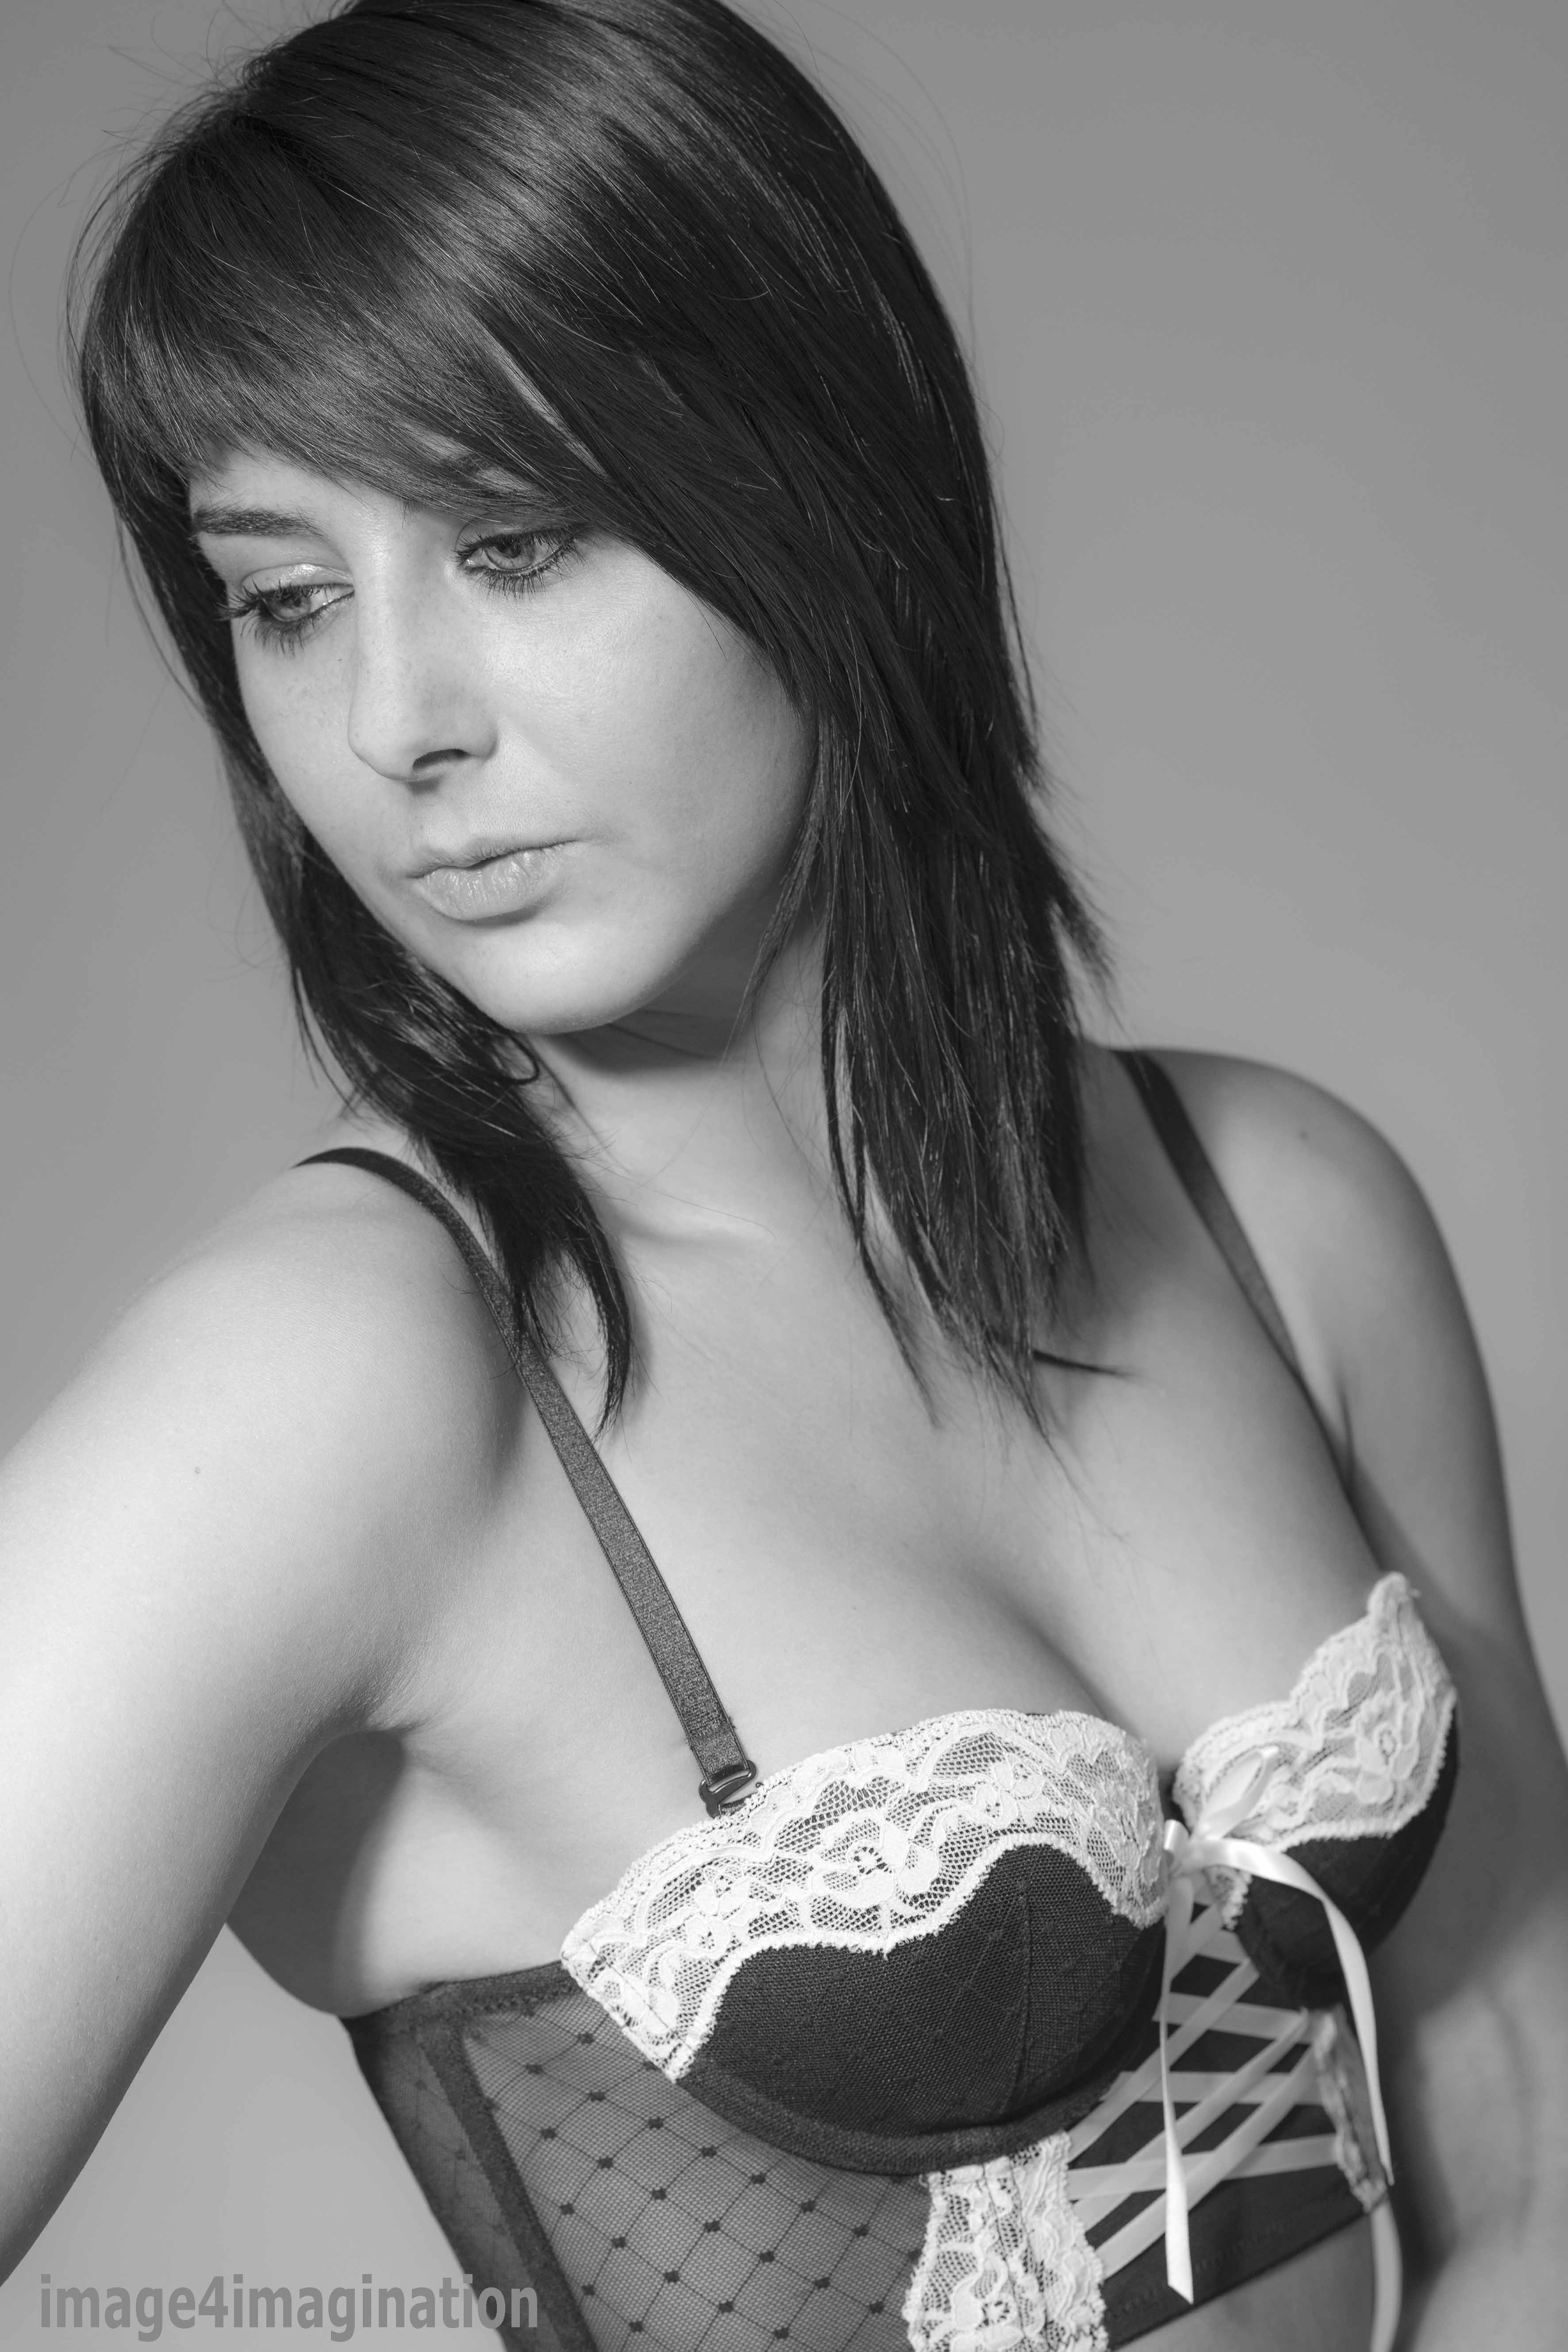 Beveiligd: bouke in black and white